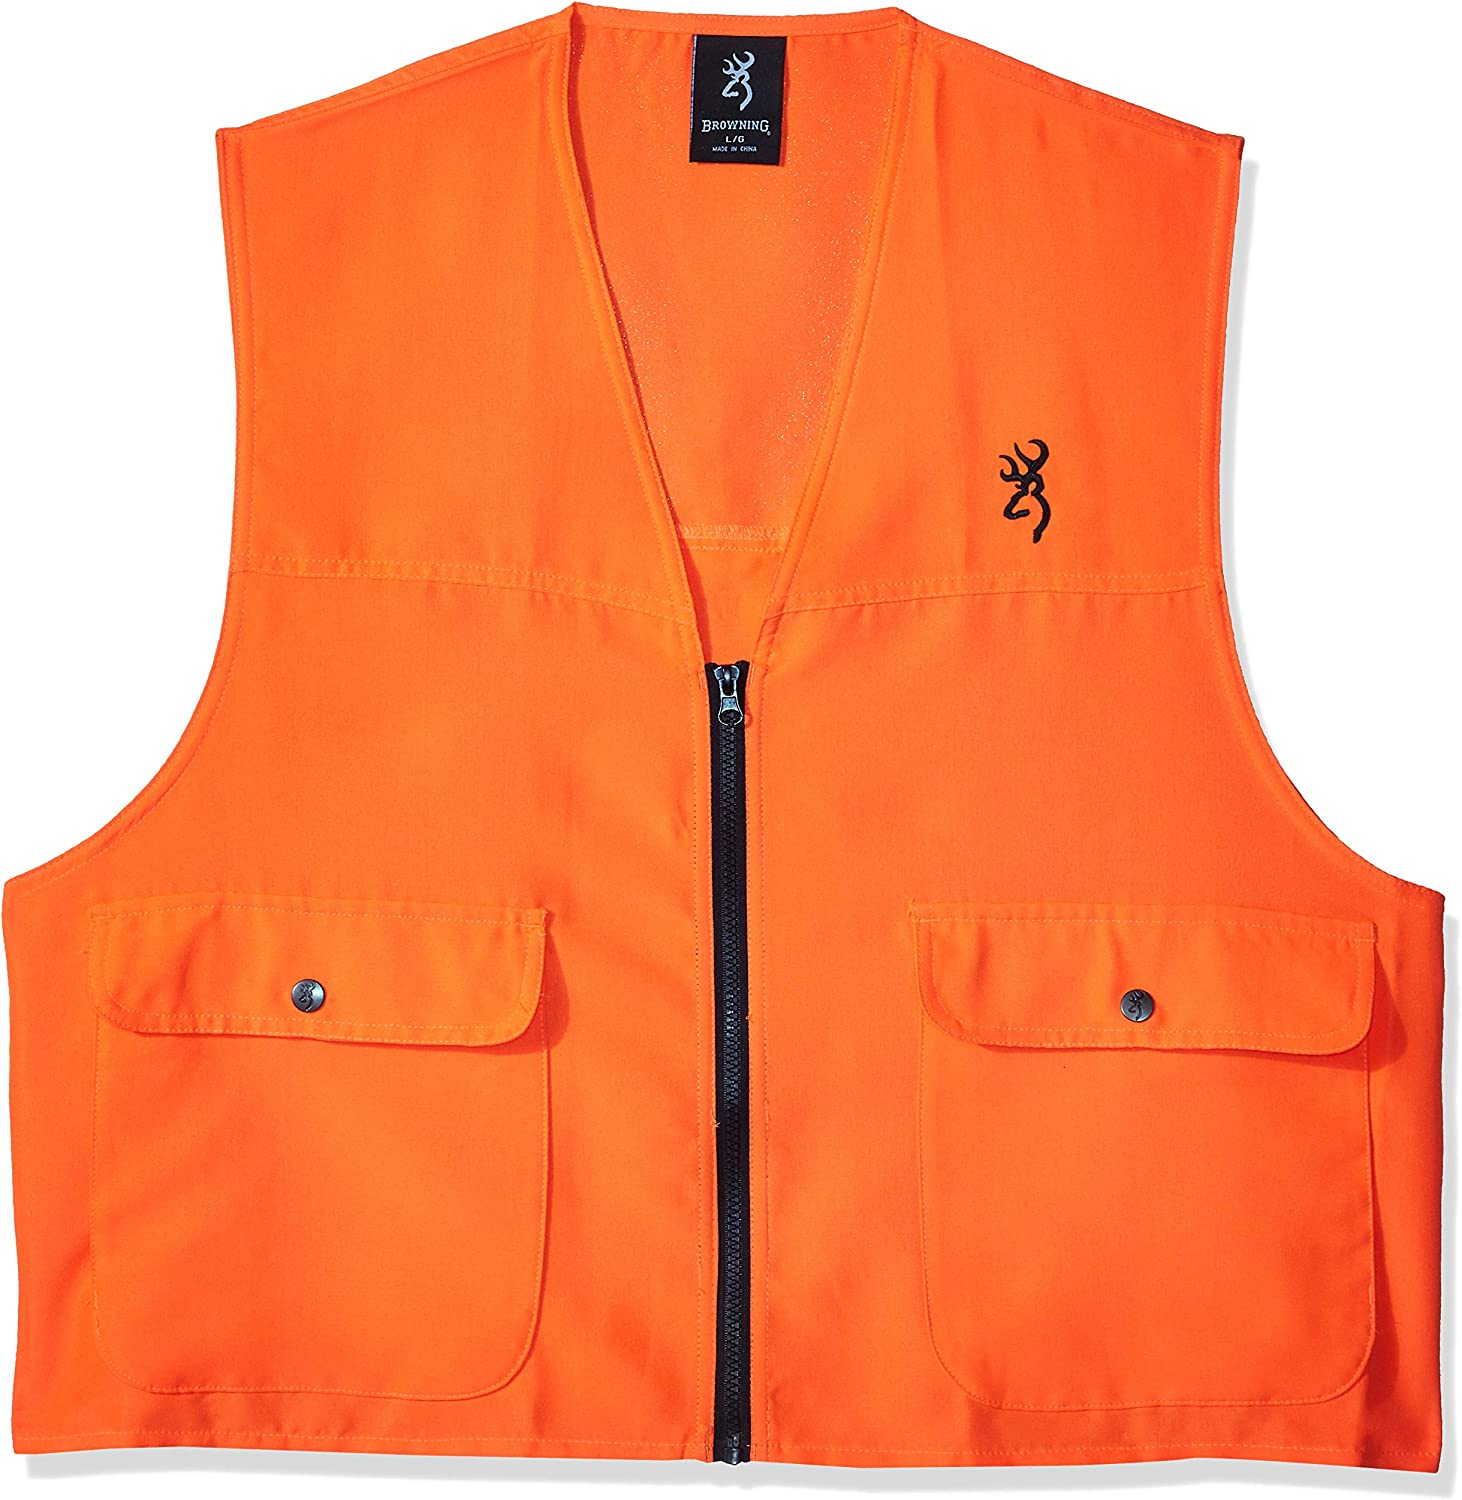 Browning Adult Safety Vest: Clothing